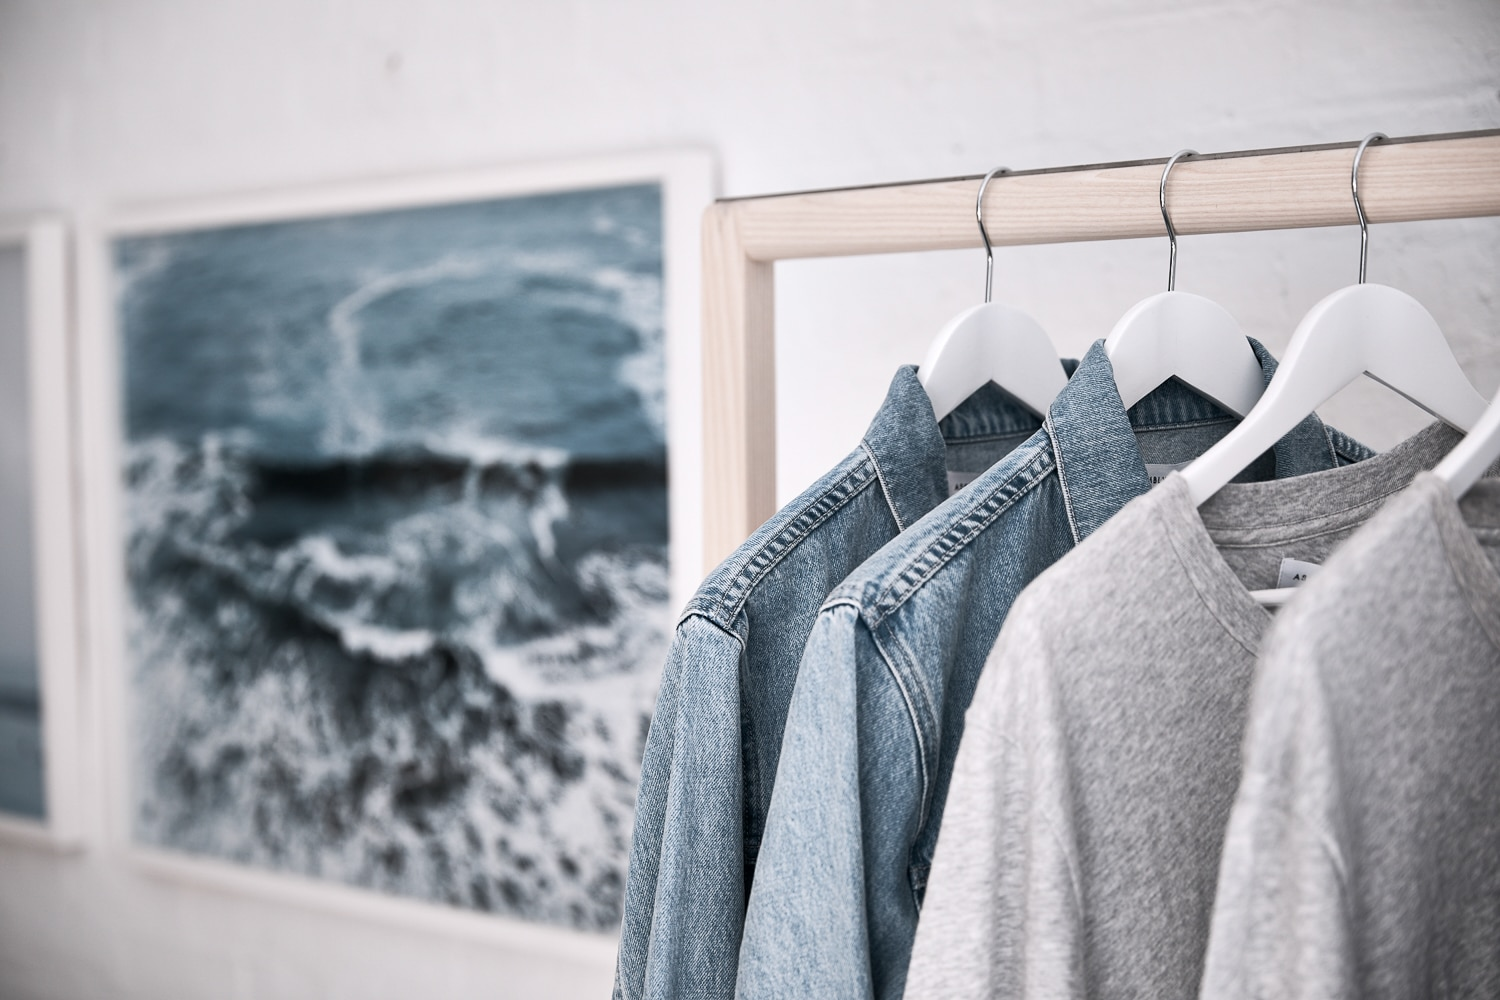 assembly label voucher jeans shirt and tshirt